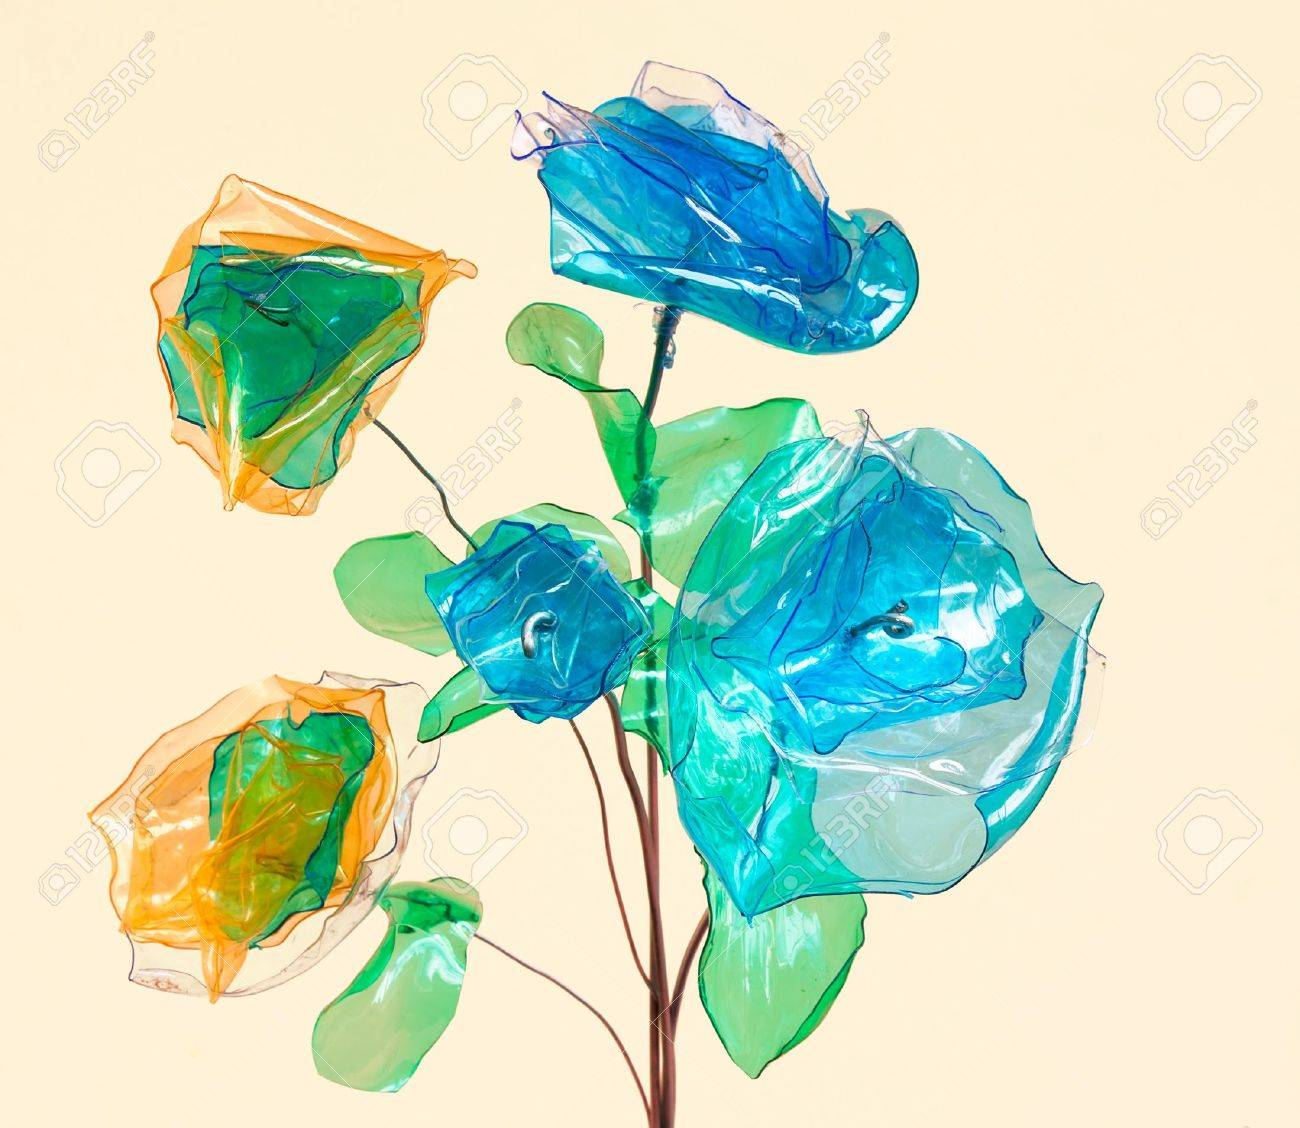 Plastic Bottle Recycling Creative Recycling Flowers Made From Scraps Of Plastic Bottles